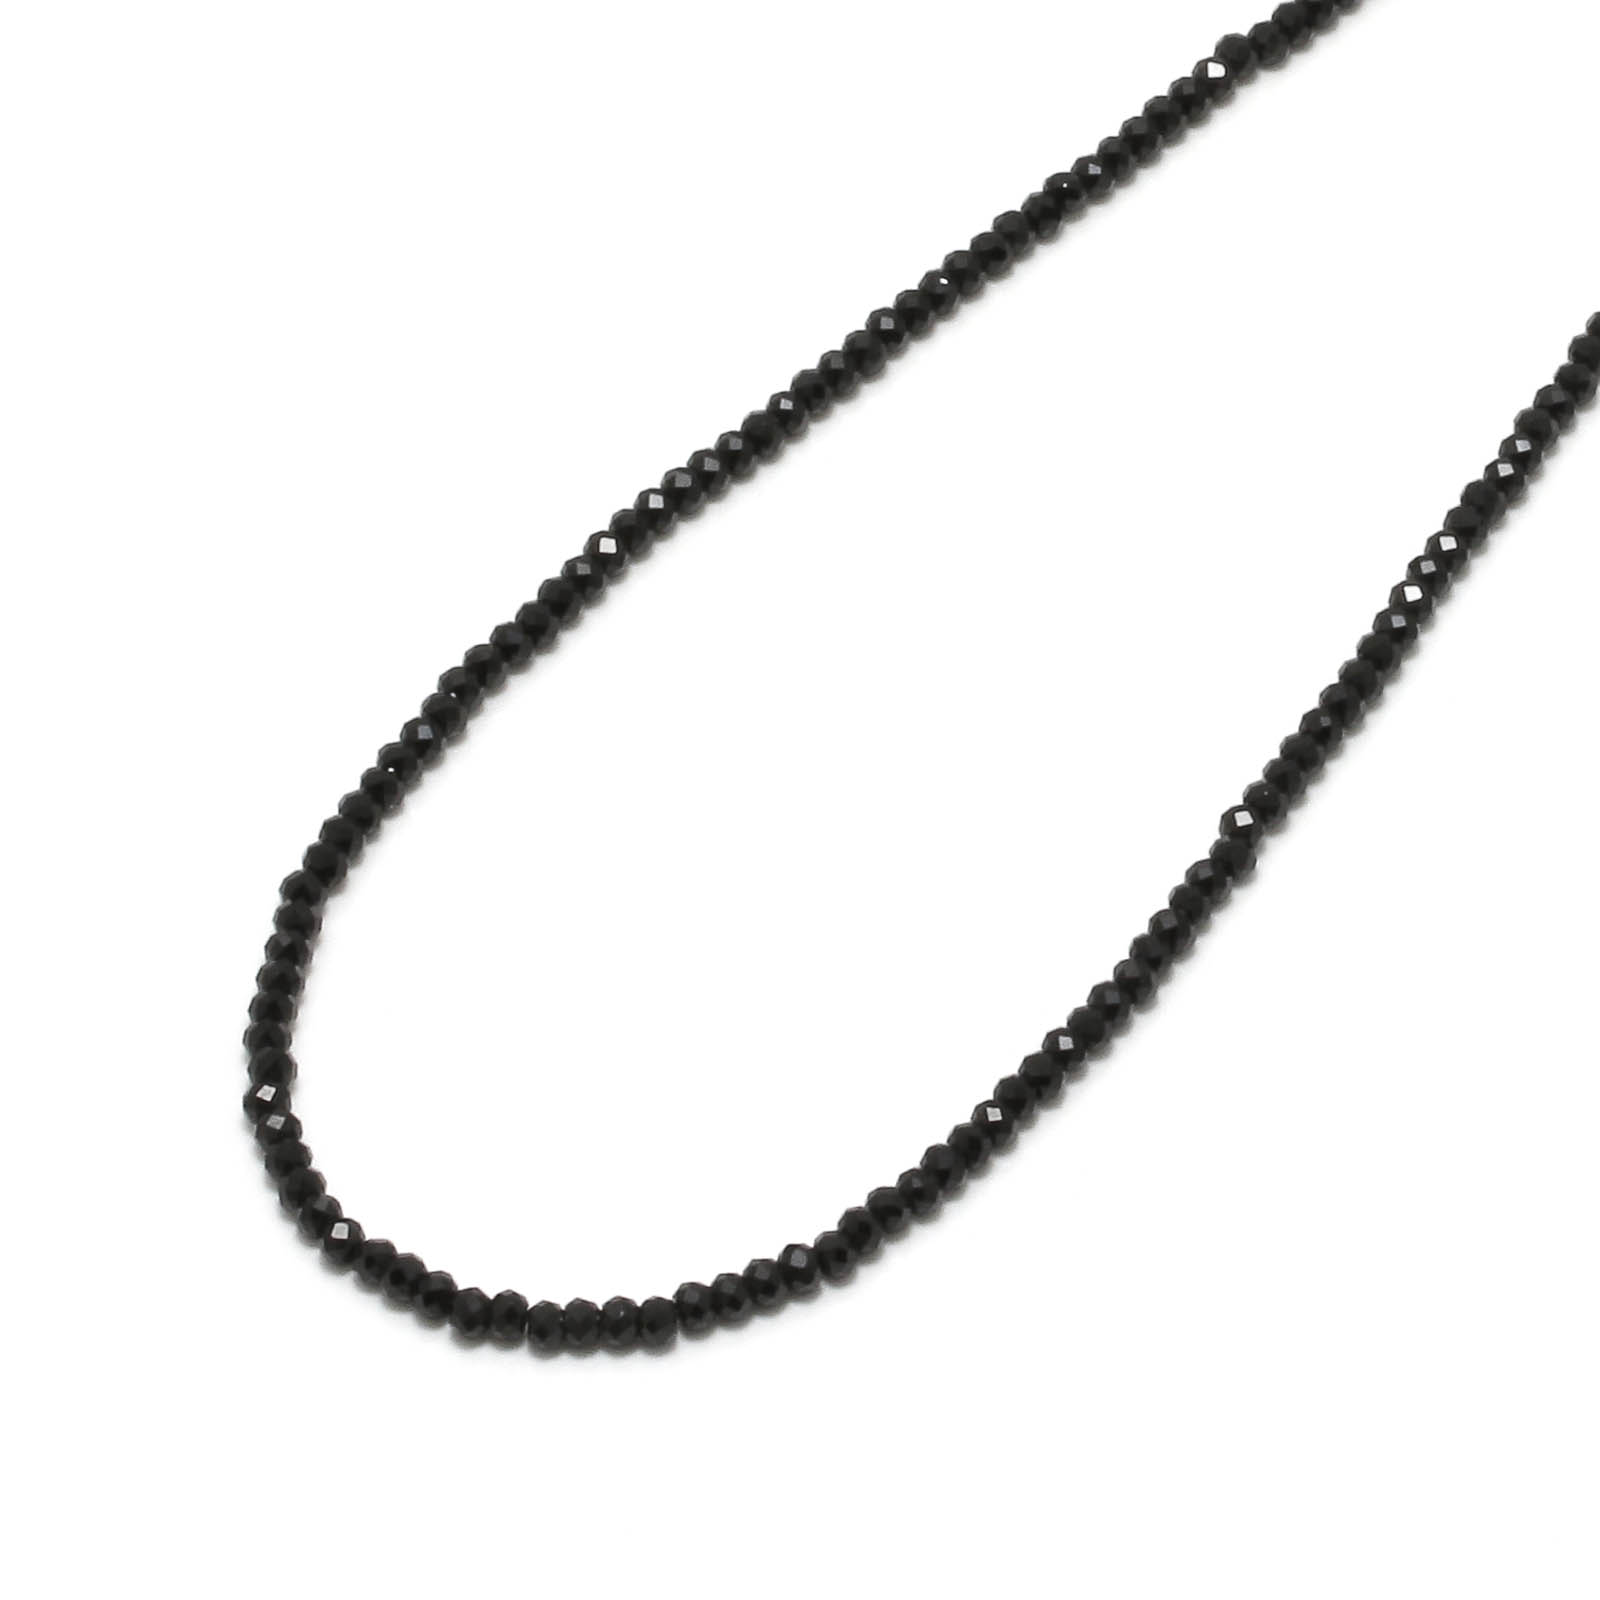 Black Spinel Necklace - Silver